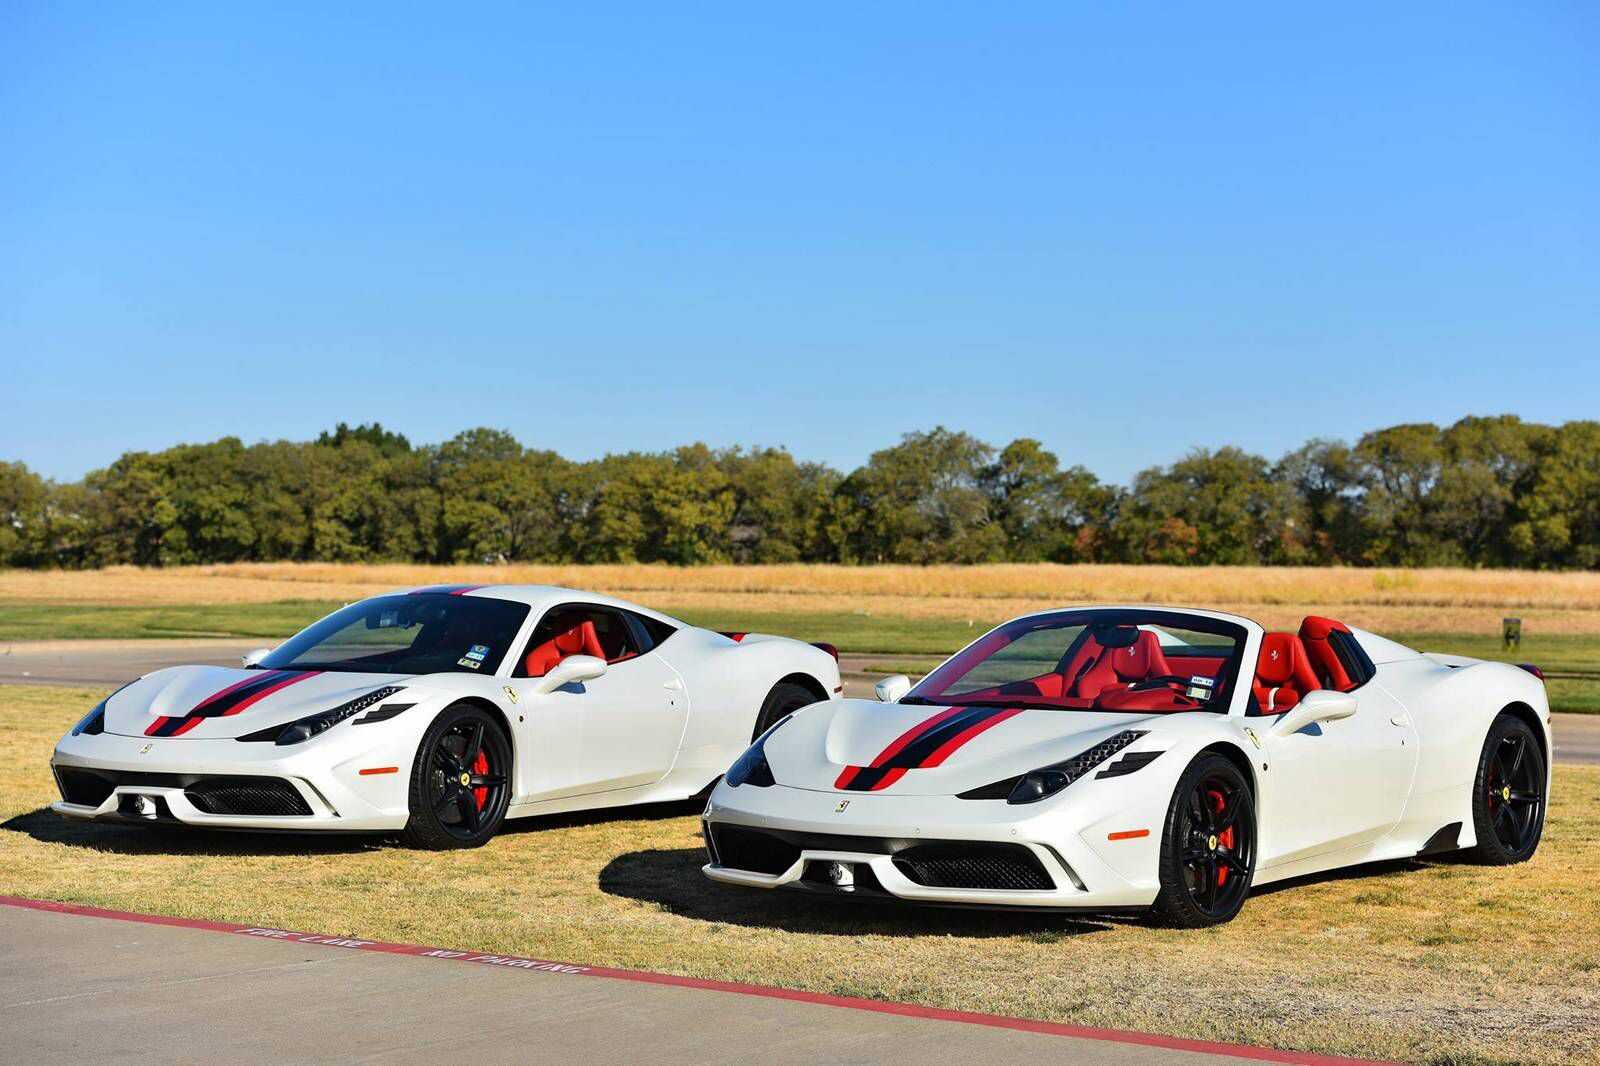 Ferrari 458 Speciale And Speciale Aperta Both Painted In Bianco